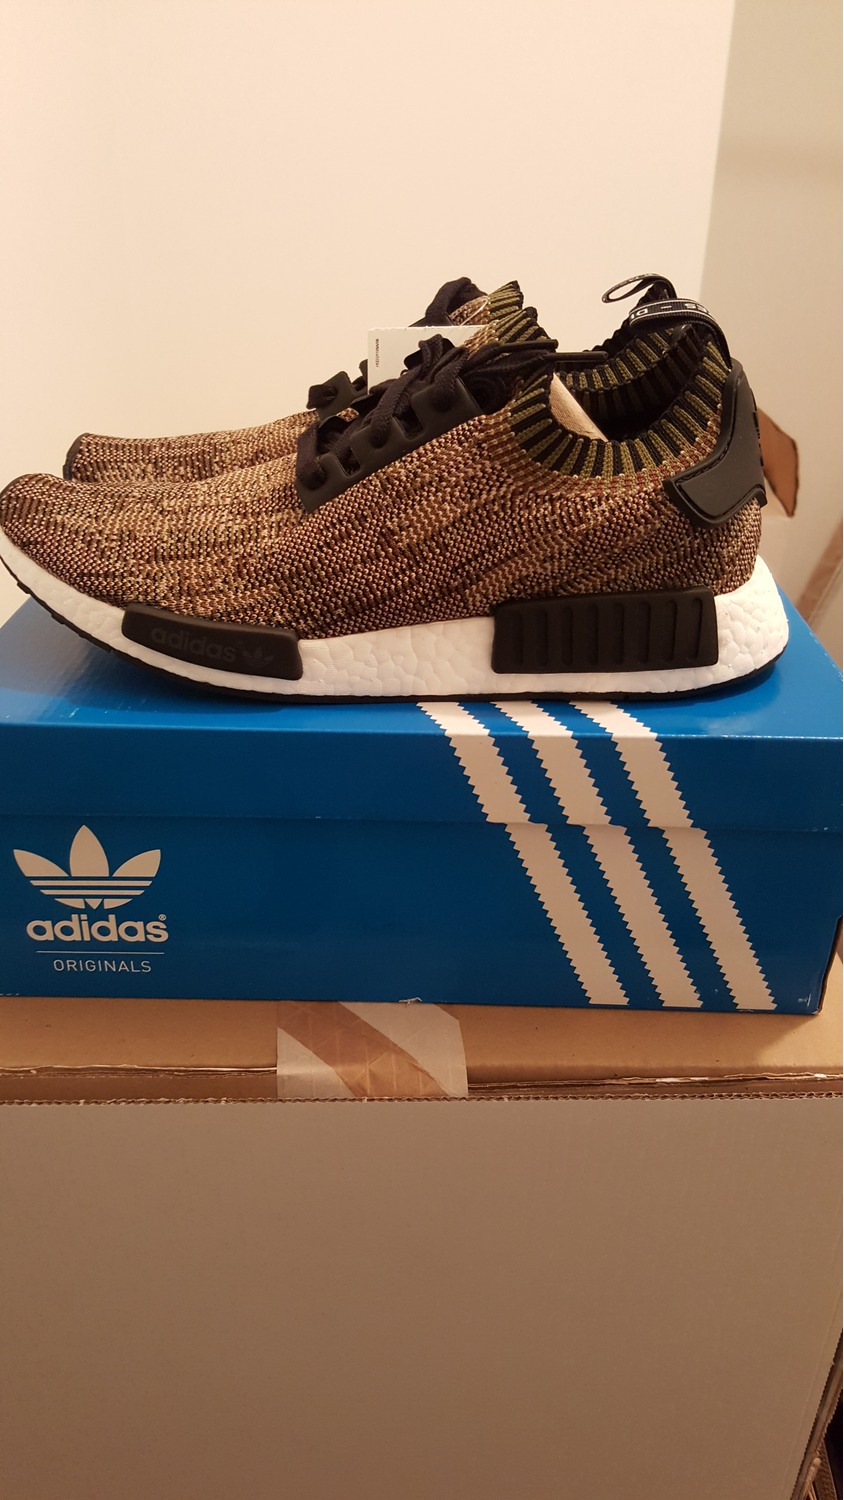 I copped Triple Black Xr1 NMD and Livestock PureBOOST Early